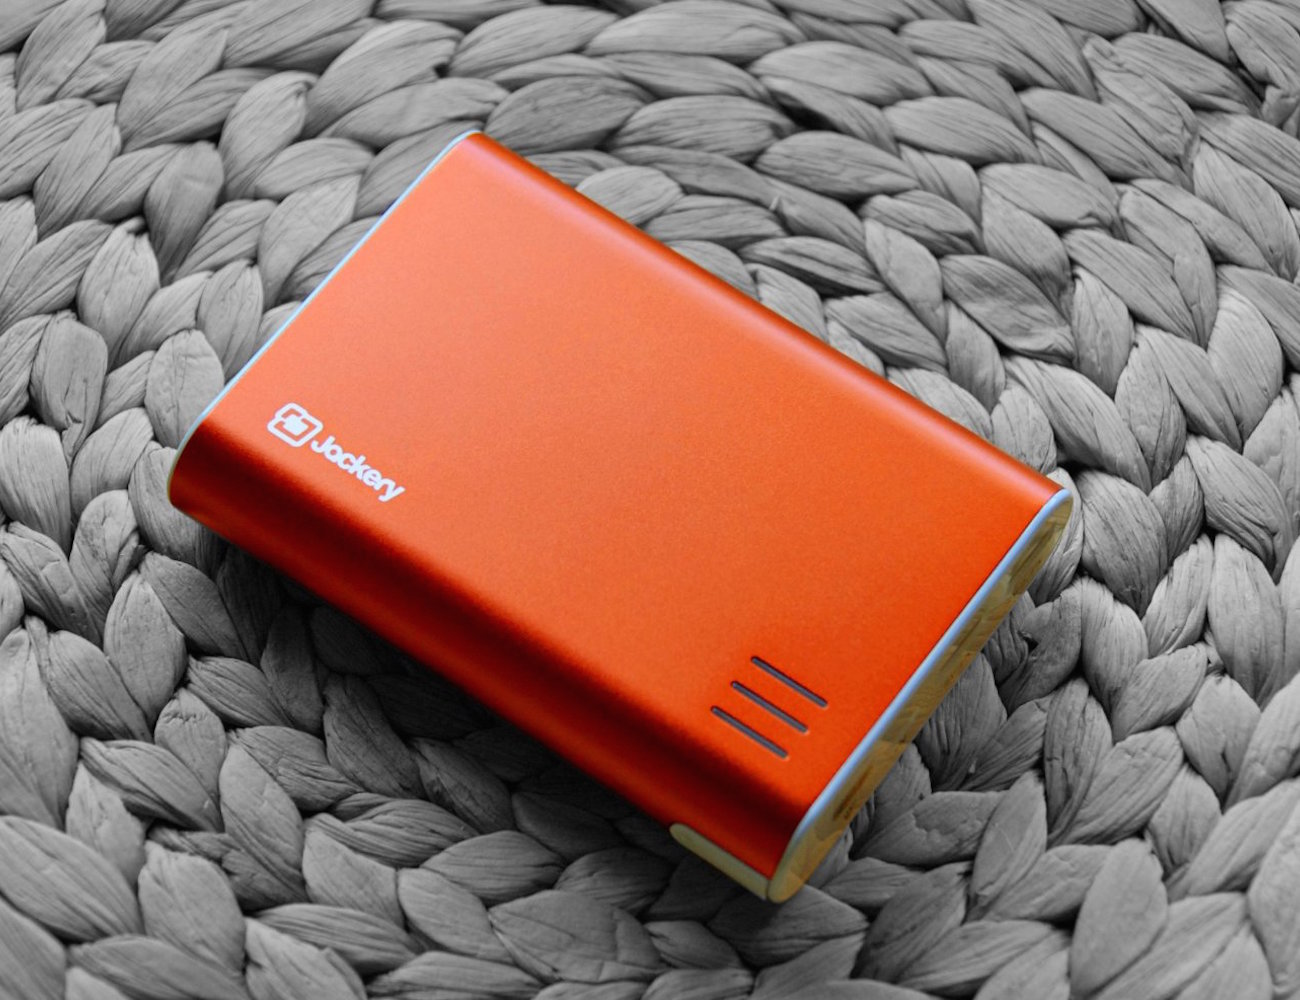 Jackery+Giant%2B+2-USB+Portable+External+Battery+Charger